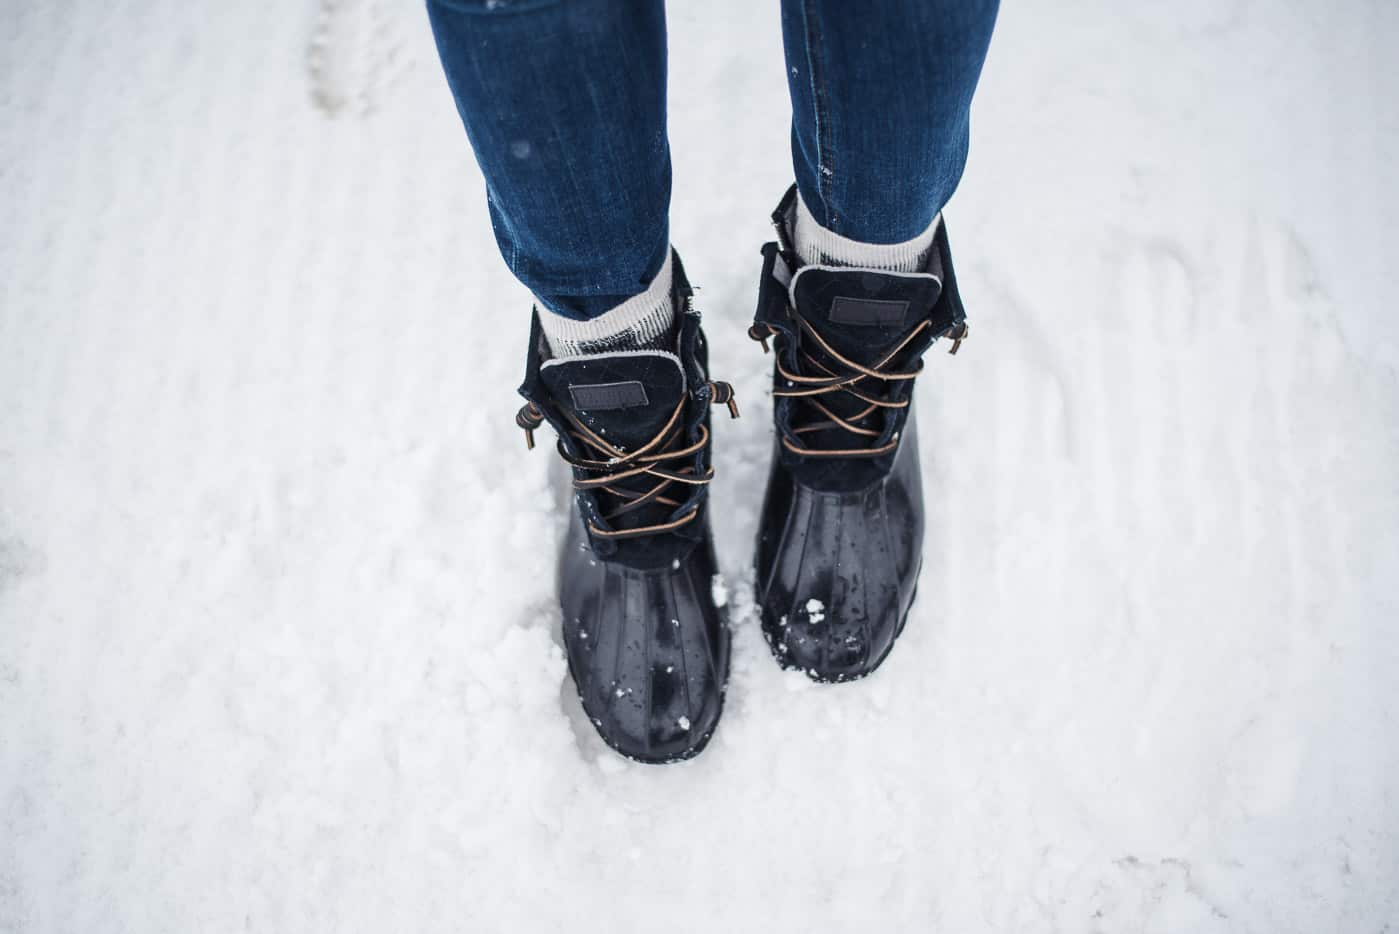 How to style Sperry duck boots, winter outfit ideas, how to style a parka - My Style Vita @mystylevita